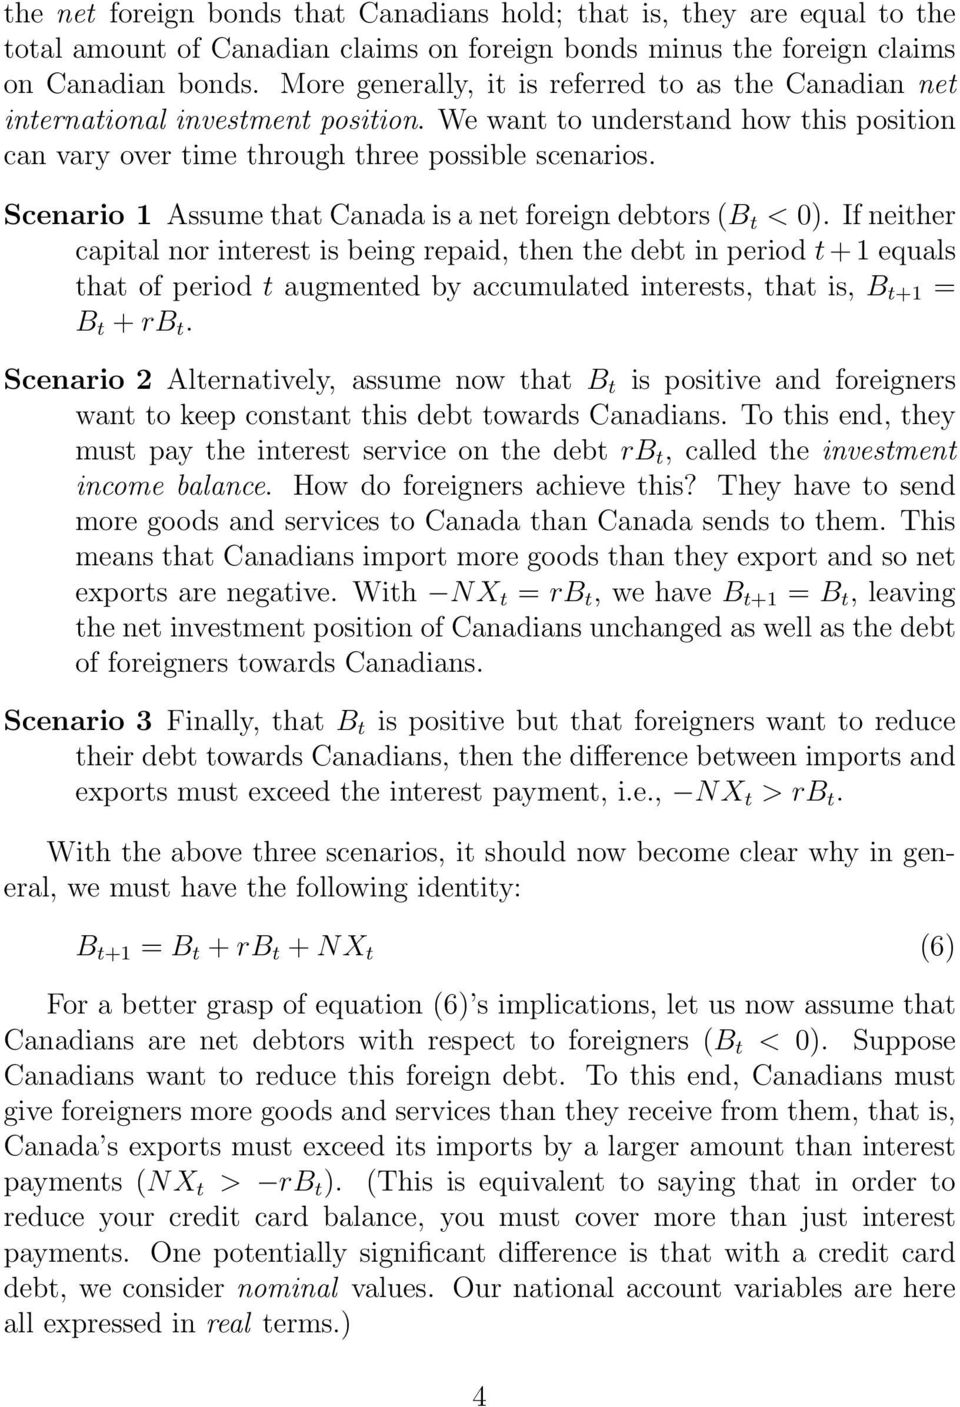 Scenario 1 Assume that Canada is a net foreign debtors (B t < 0).